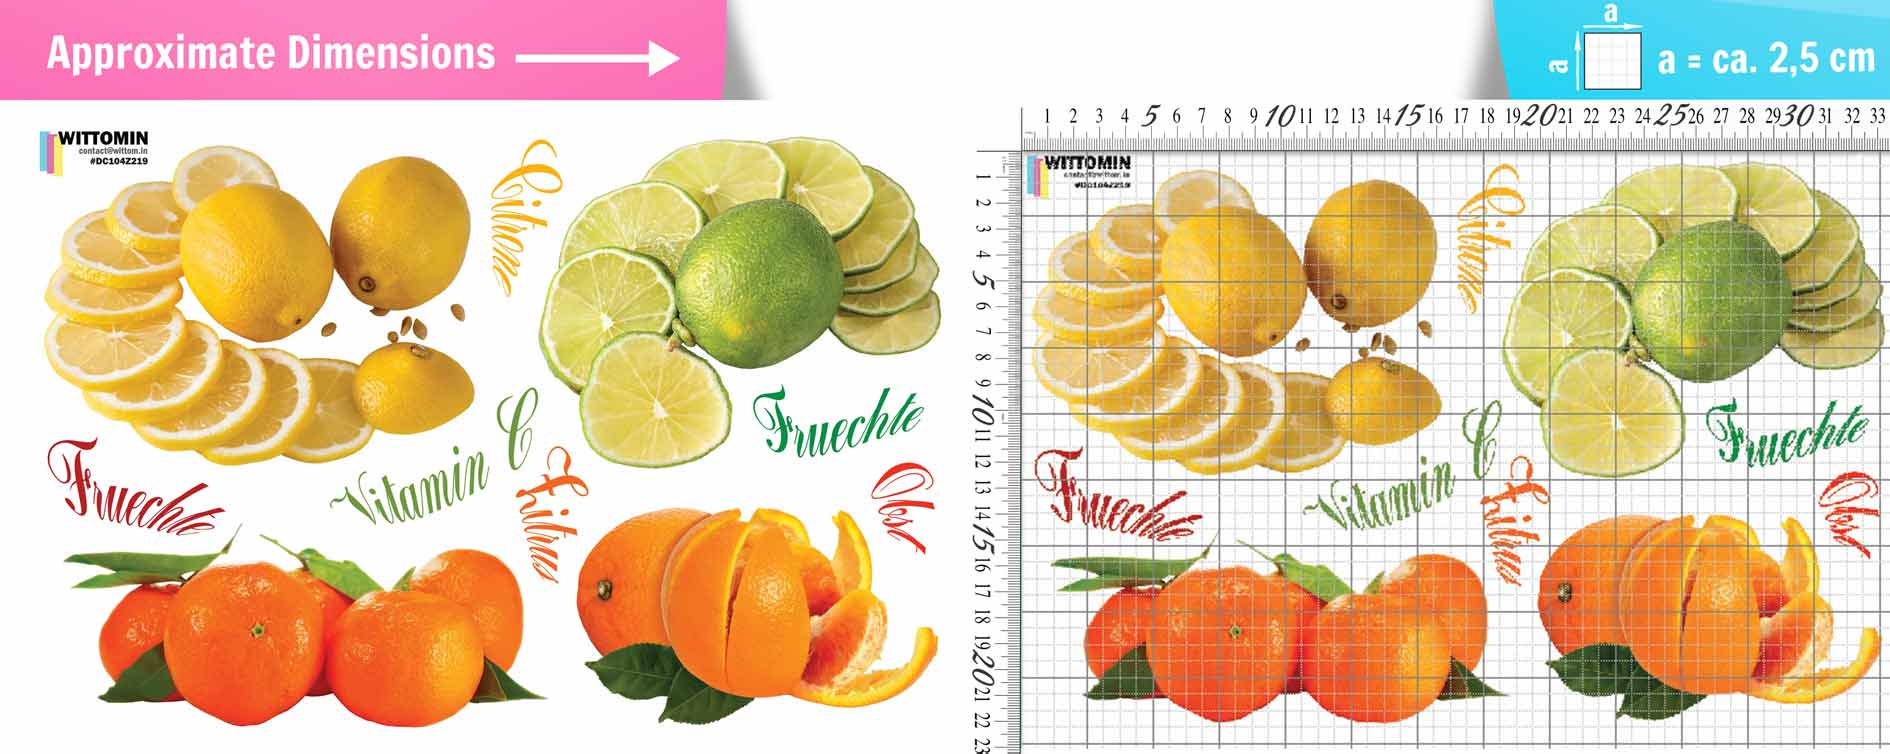 Fruits - citrus sticker set from Wittomin